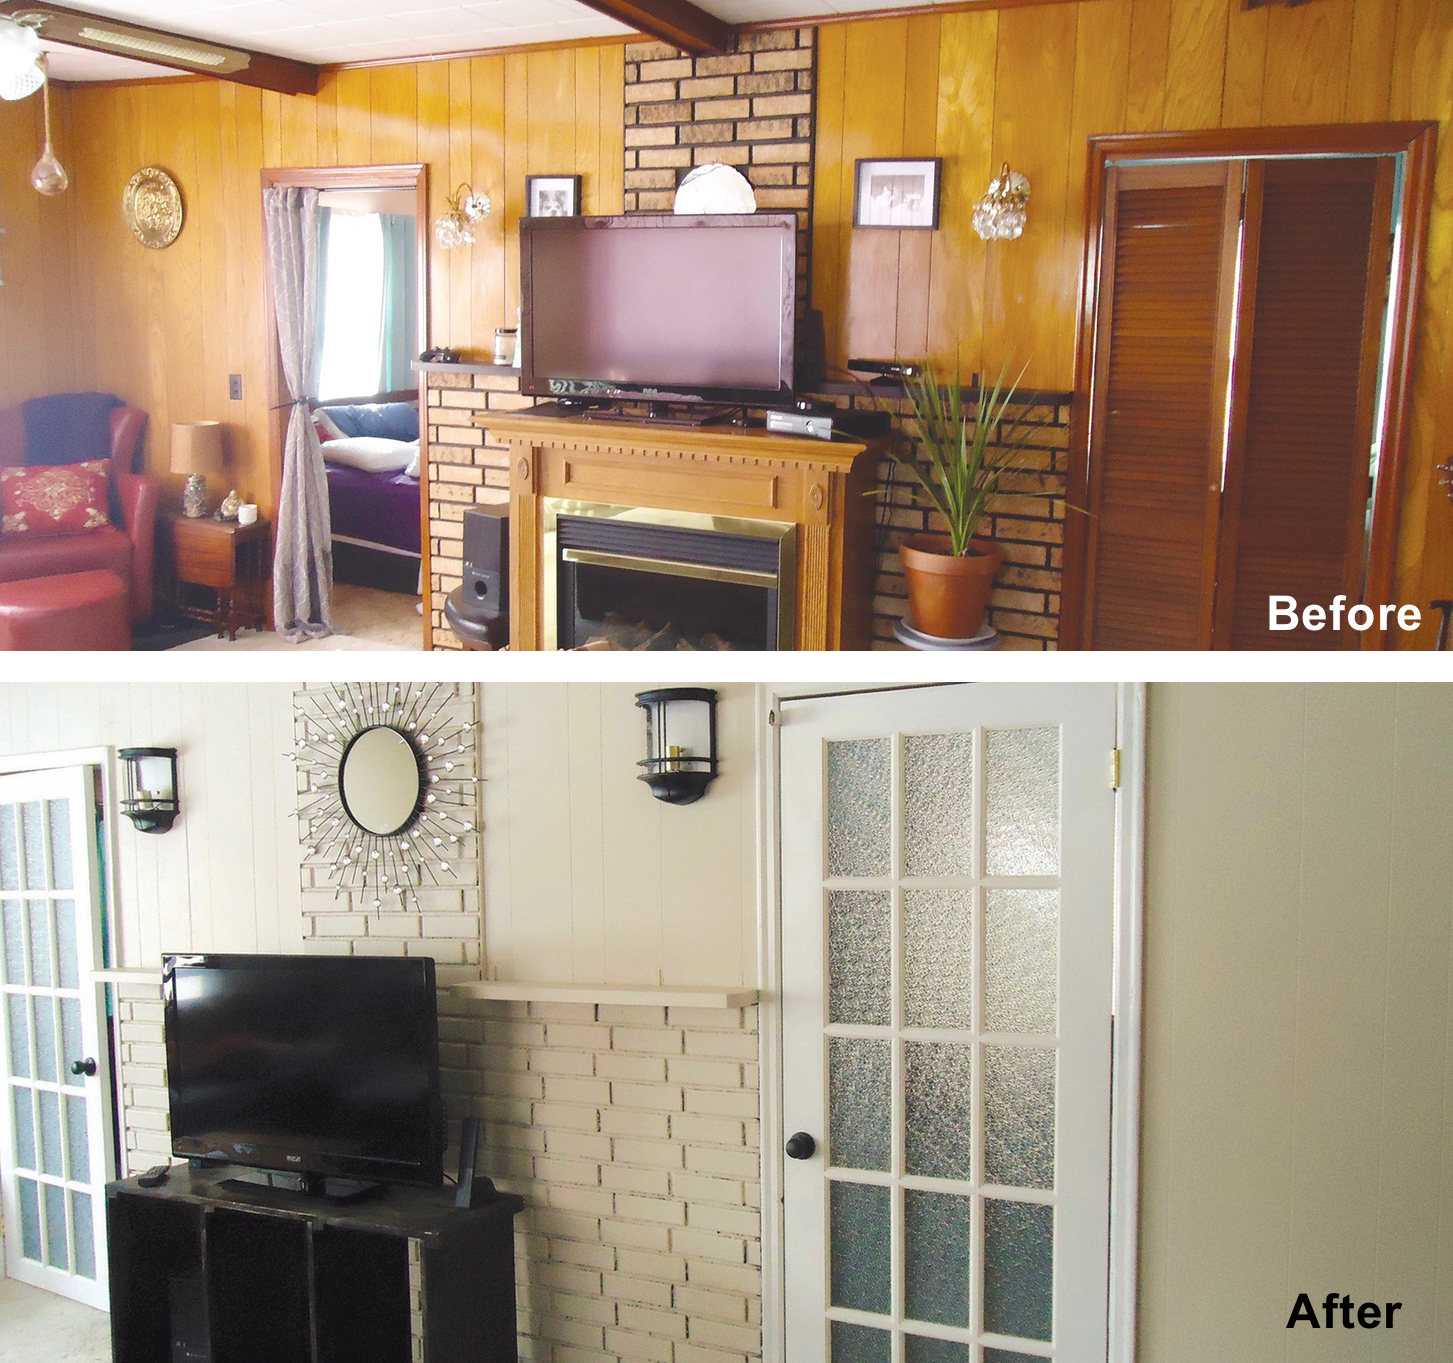 If the budget doesn't allow for large renovations entire rooms can be transformed and given new life with the right paint colours and less expensive changes such as new doors, hardware, lighting and décor.